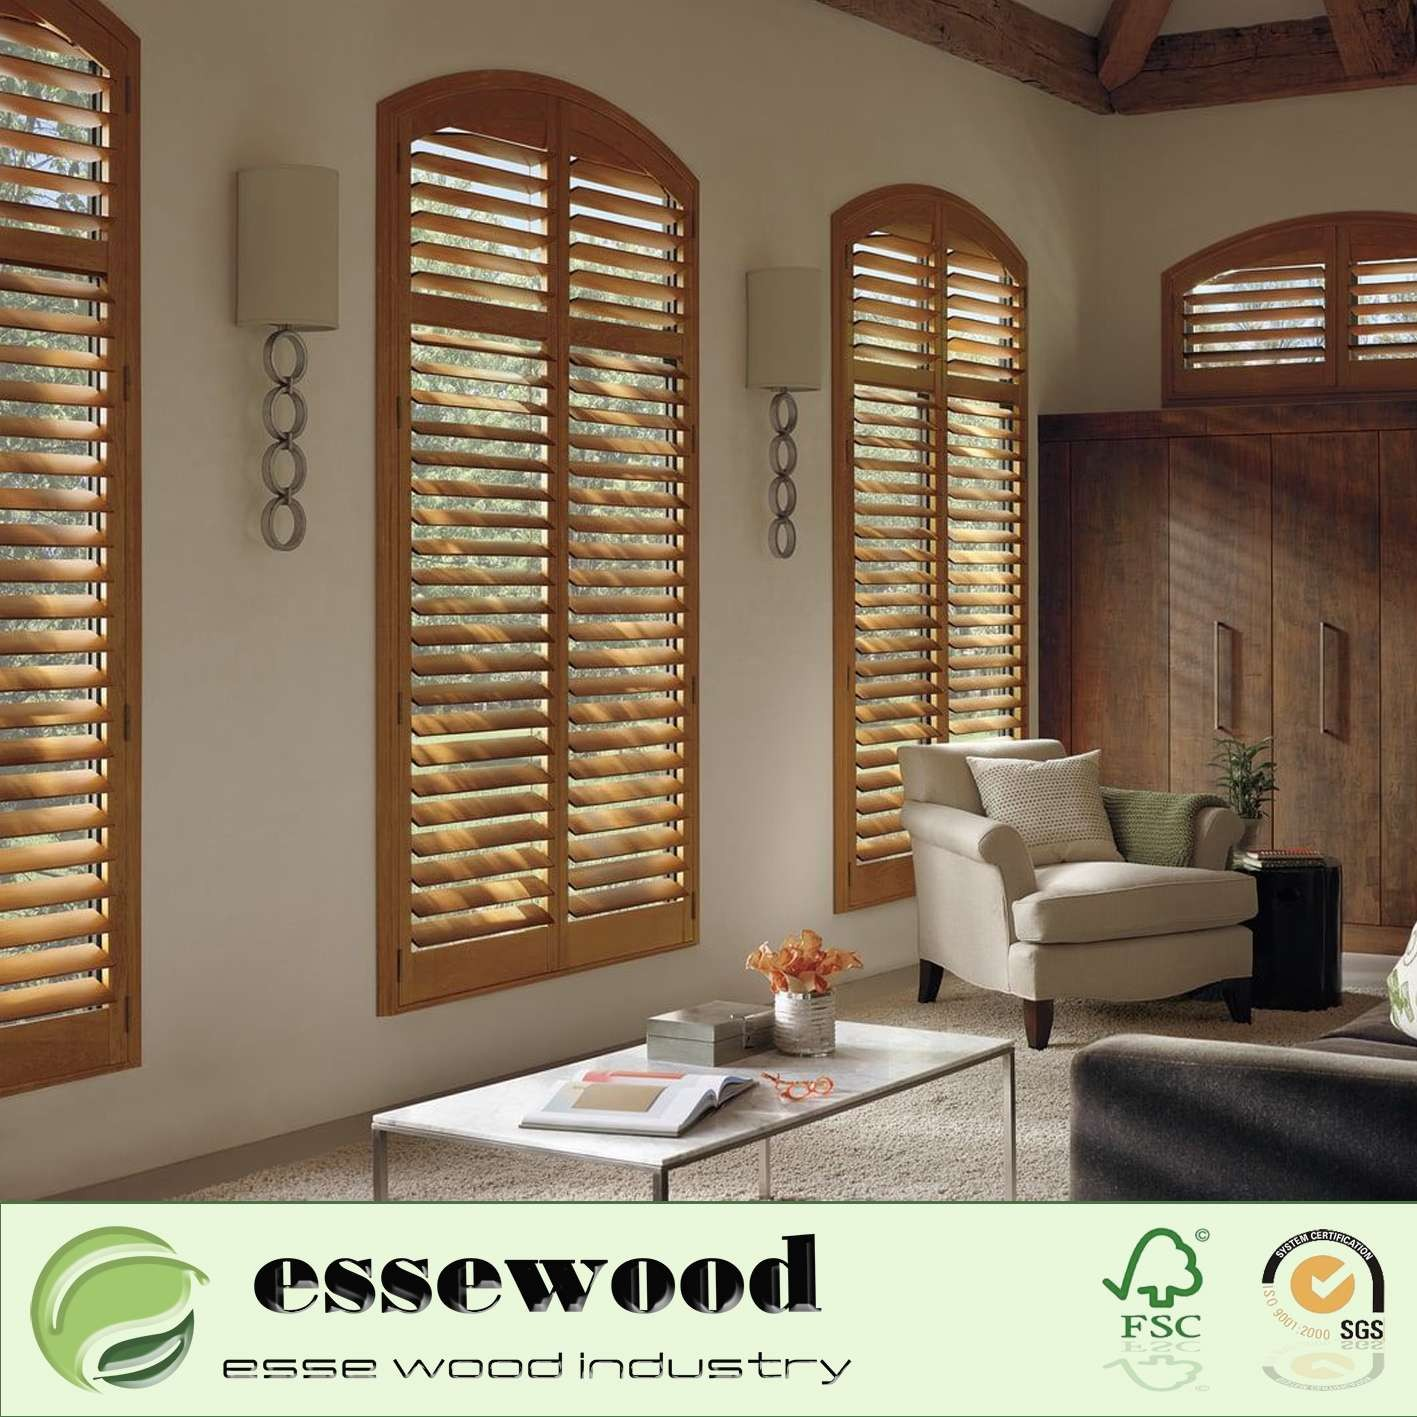 White Decorative Wood Plantation Shutters for Bedroom and House Dining Room Shutters